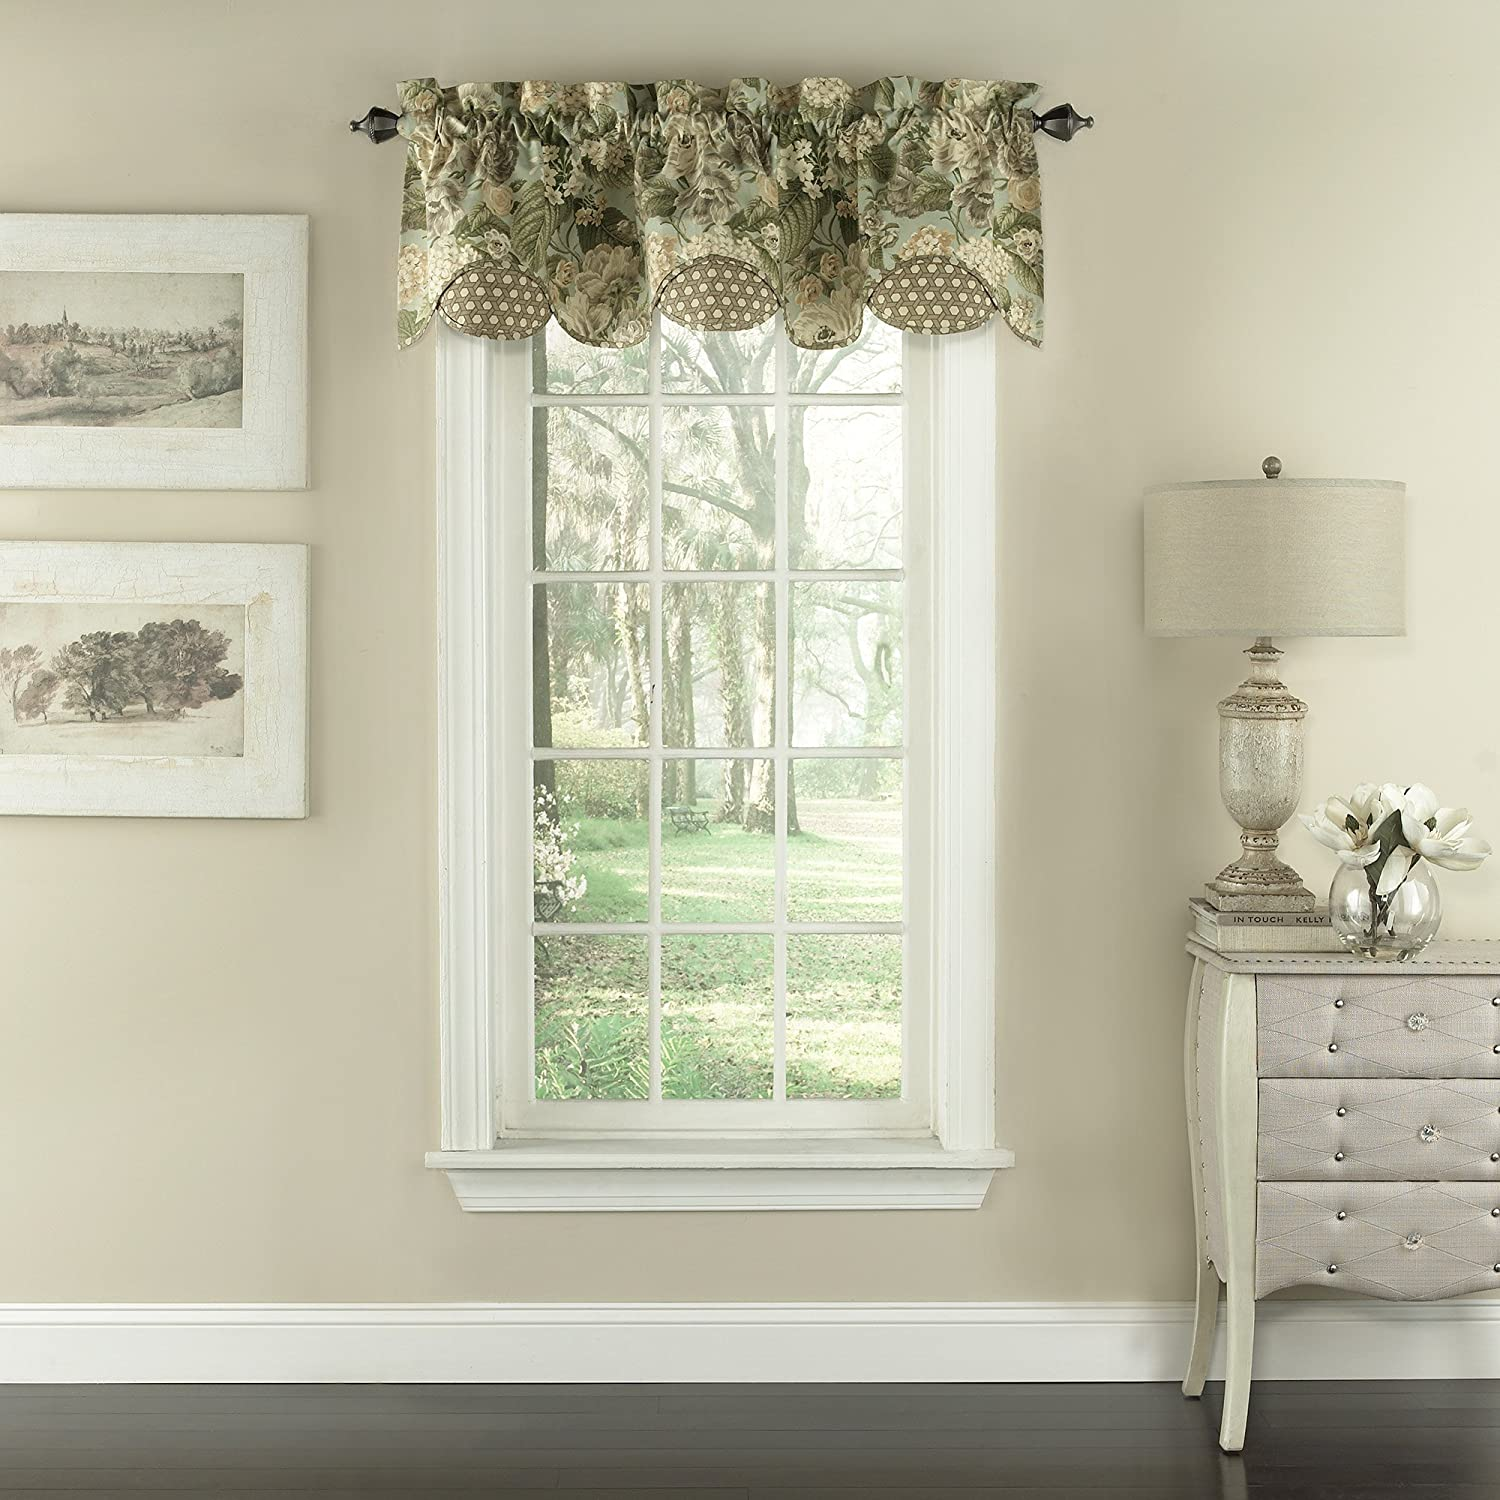 "WAVERLY Garden Glory Window Valance 16""x60"" Mist"